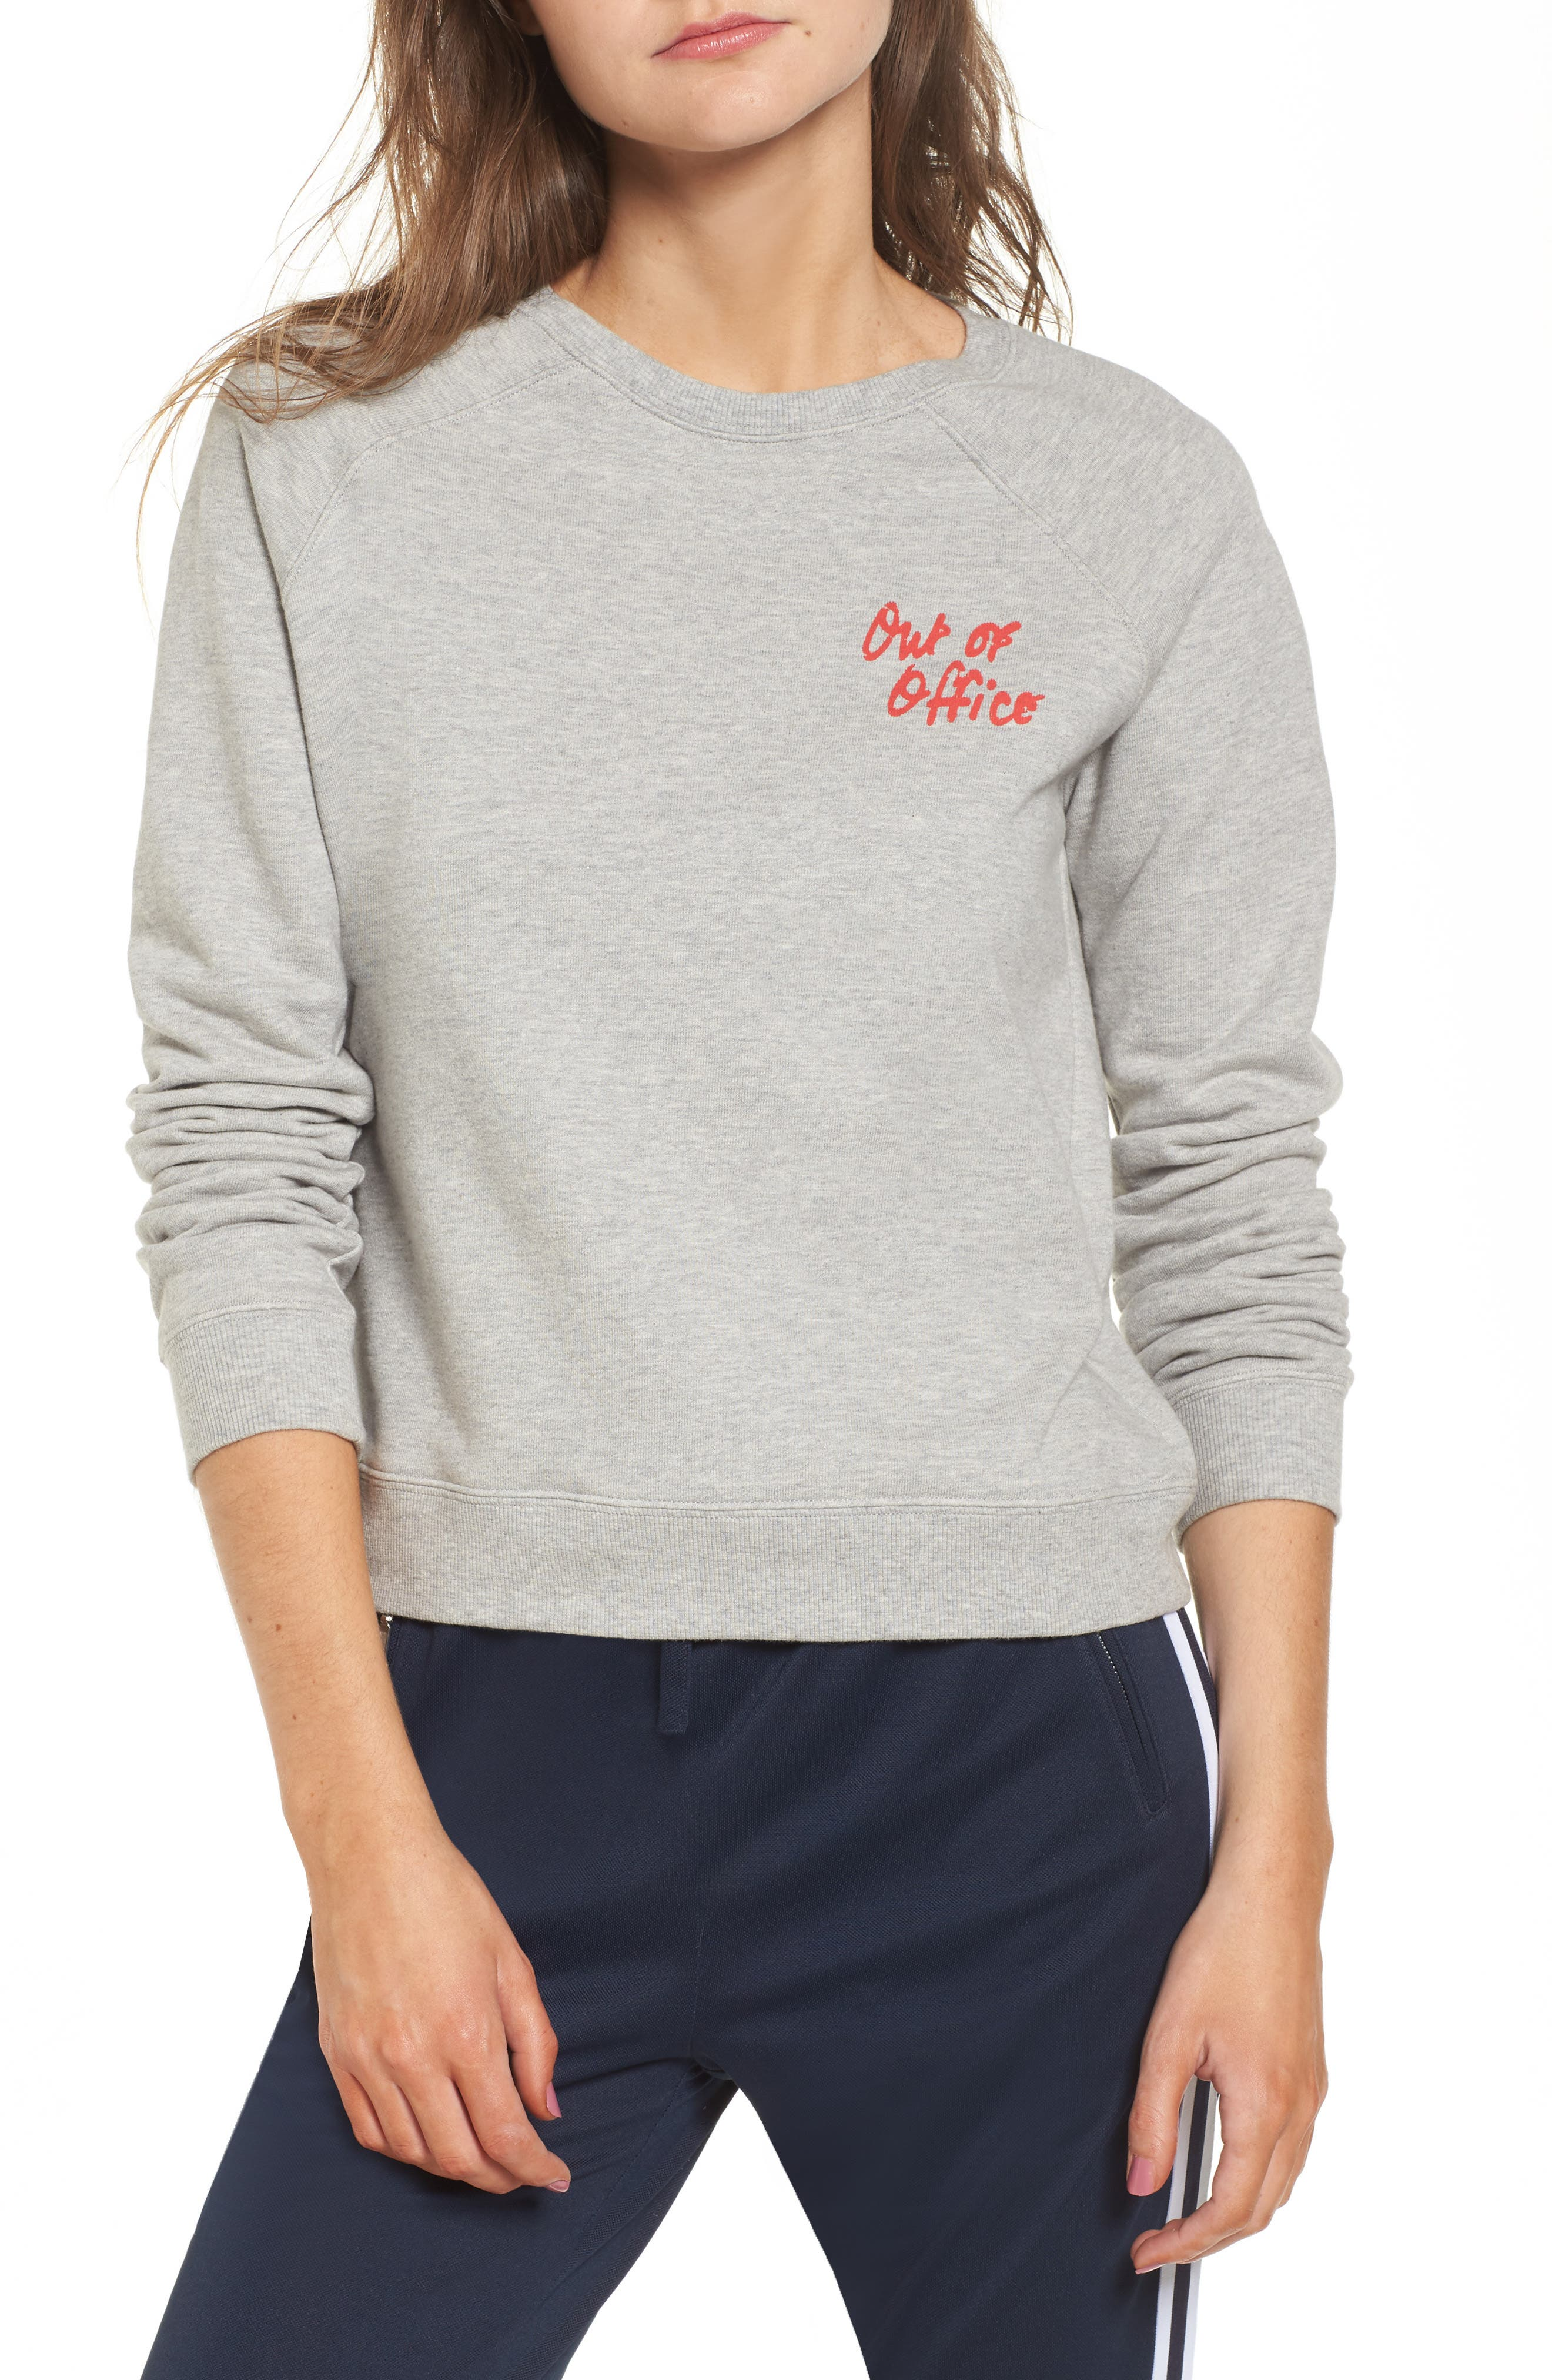 Out of Office Sweatshirt,                             Main thumbnail 1, color,